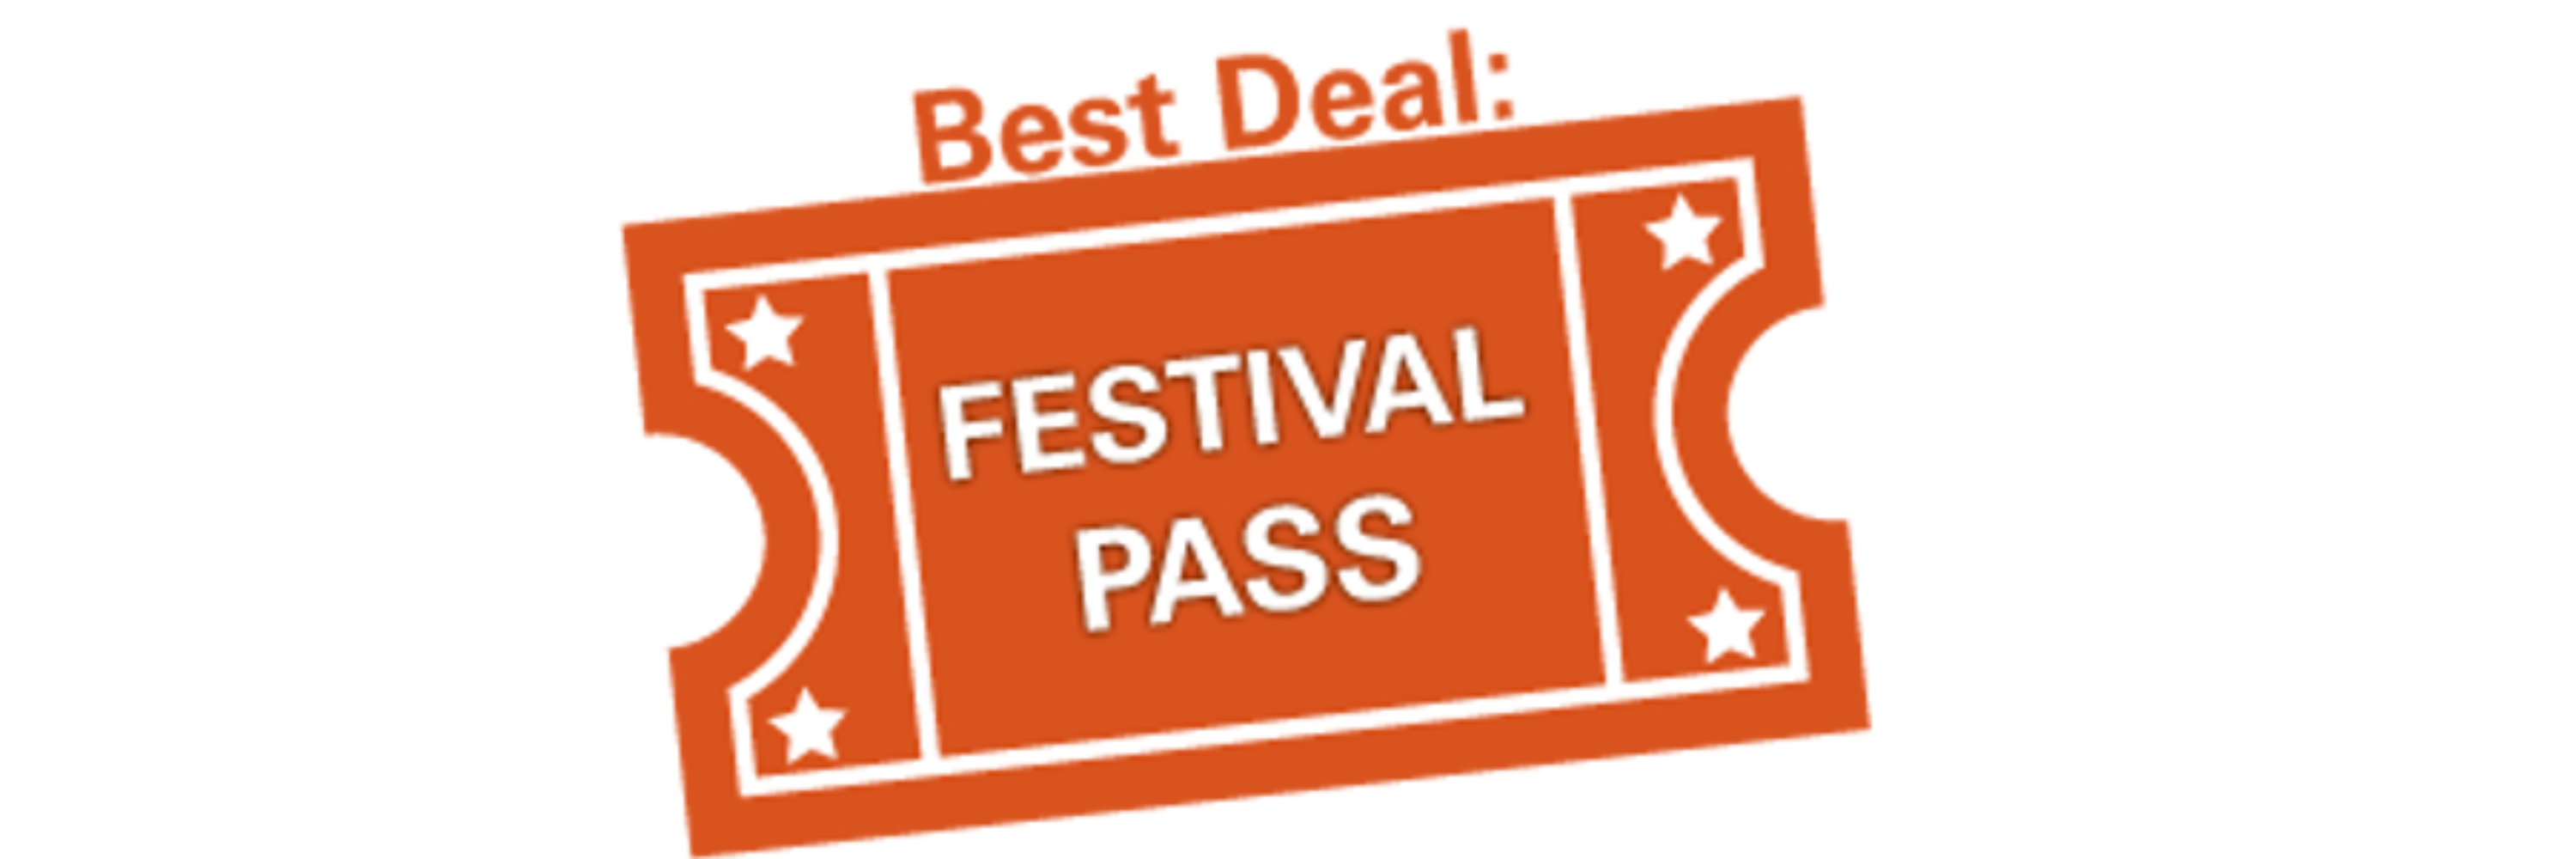 Theatre Tickets Festival Pass Best Deal